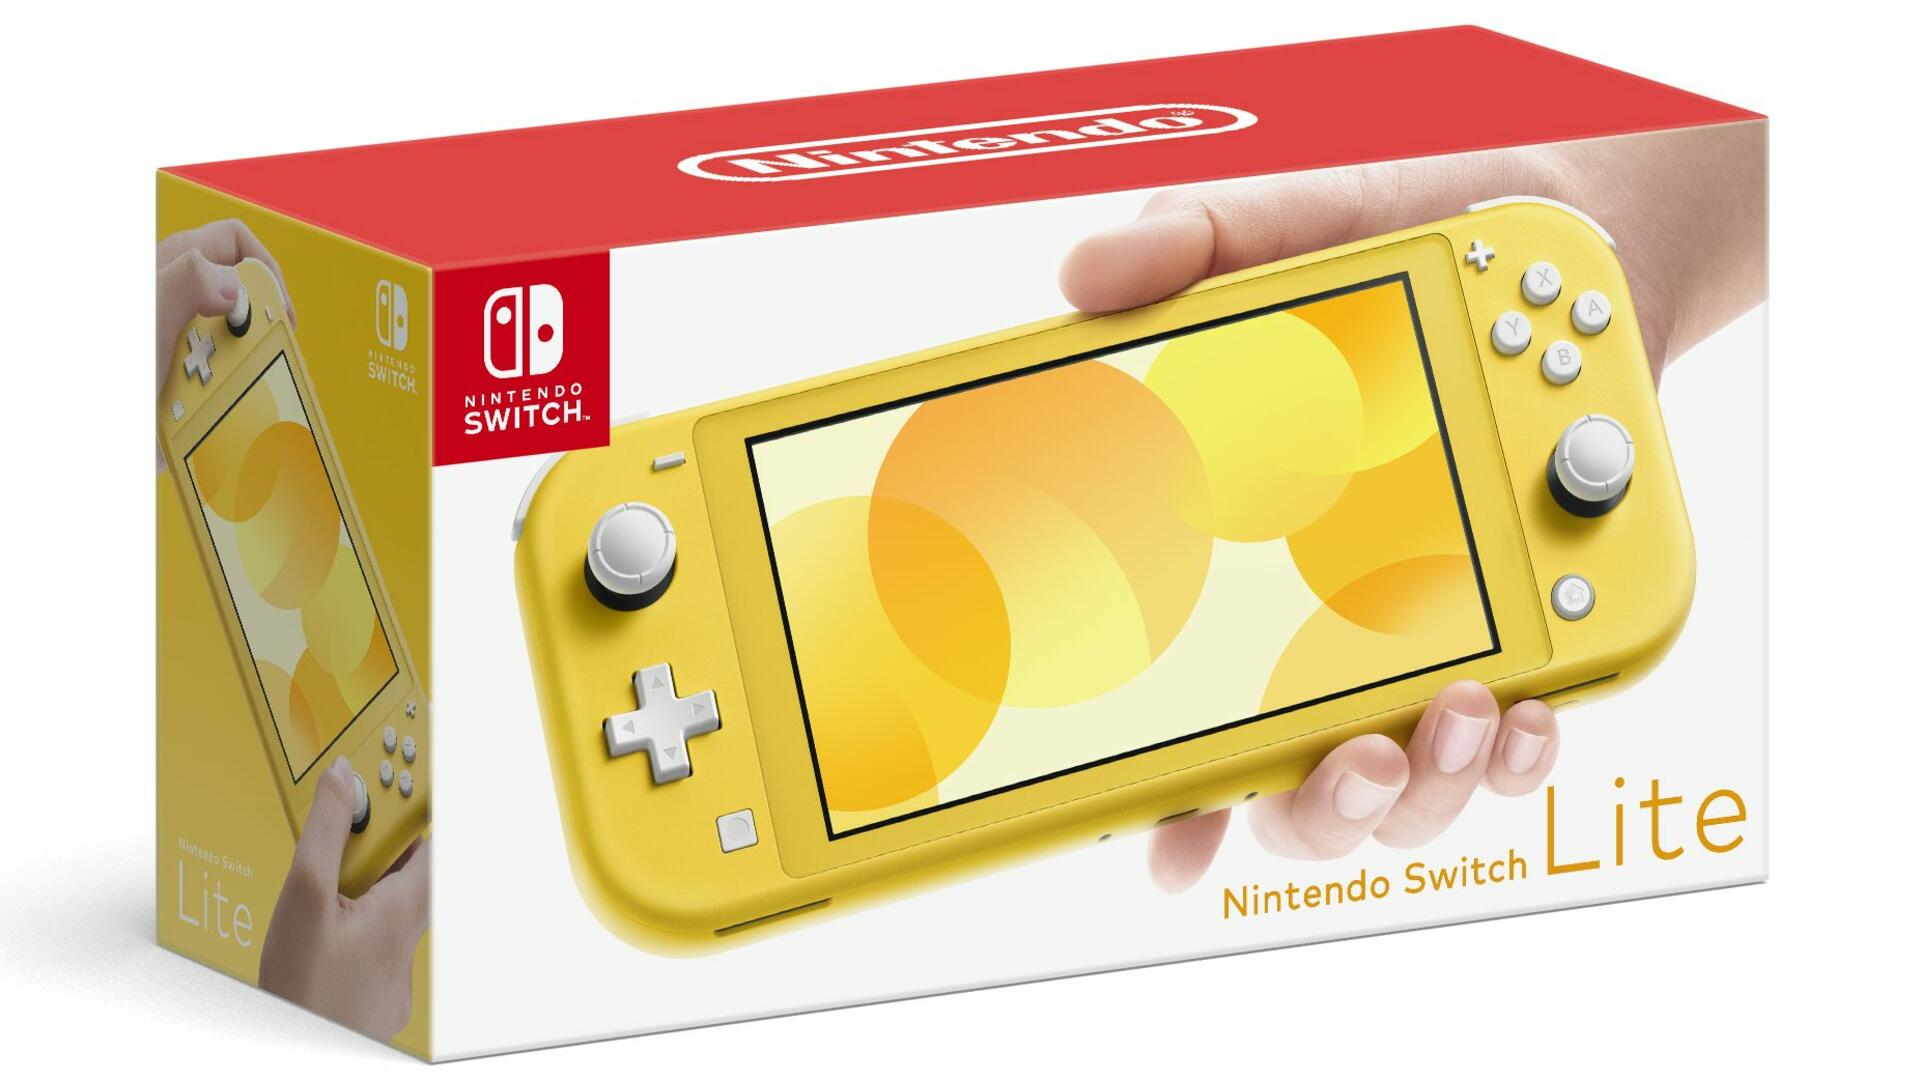 Nintendo Switch Lite Release Date and Price, Specs, Is it Portable Only?